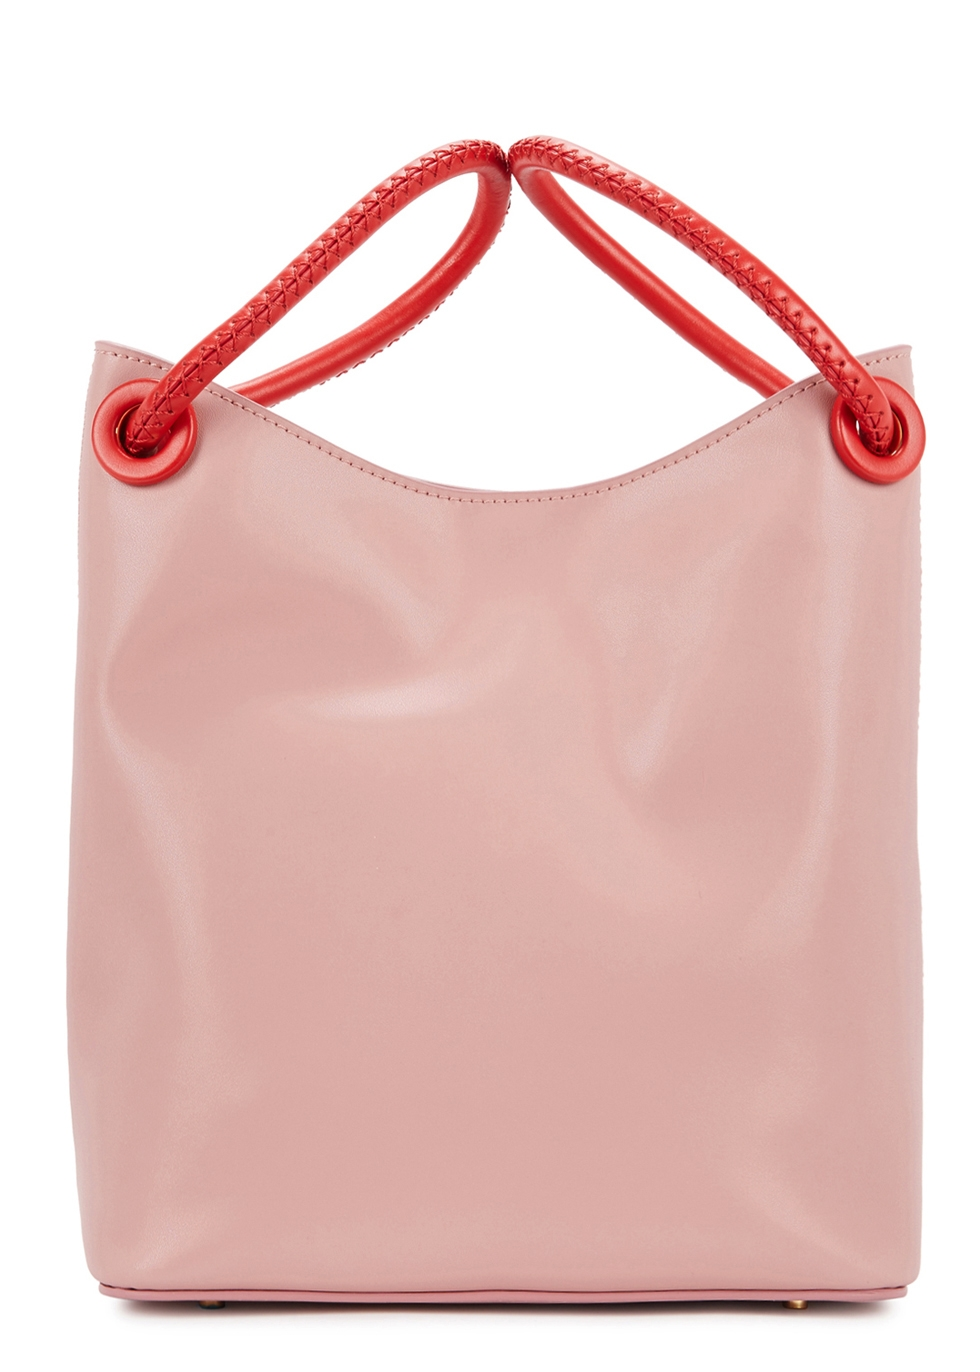 ELLEME VOSGES SMALL PINK LEATHER TOTE